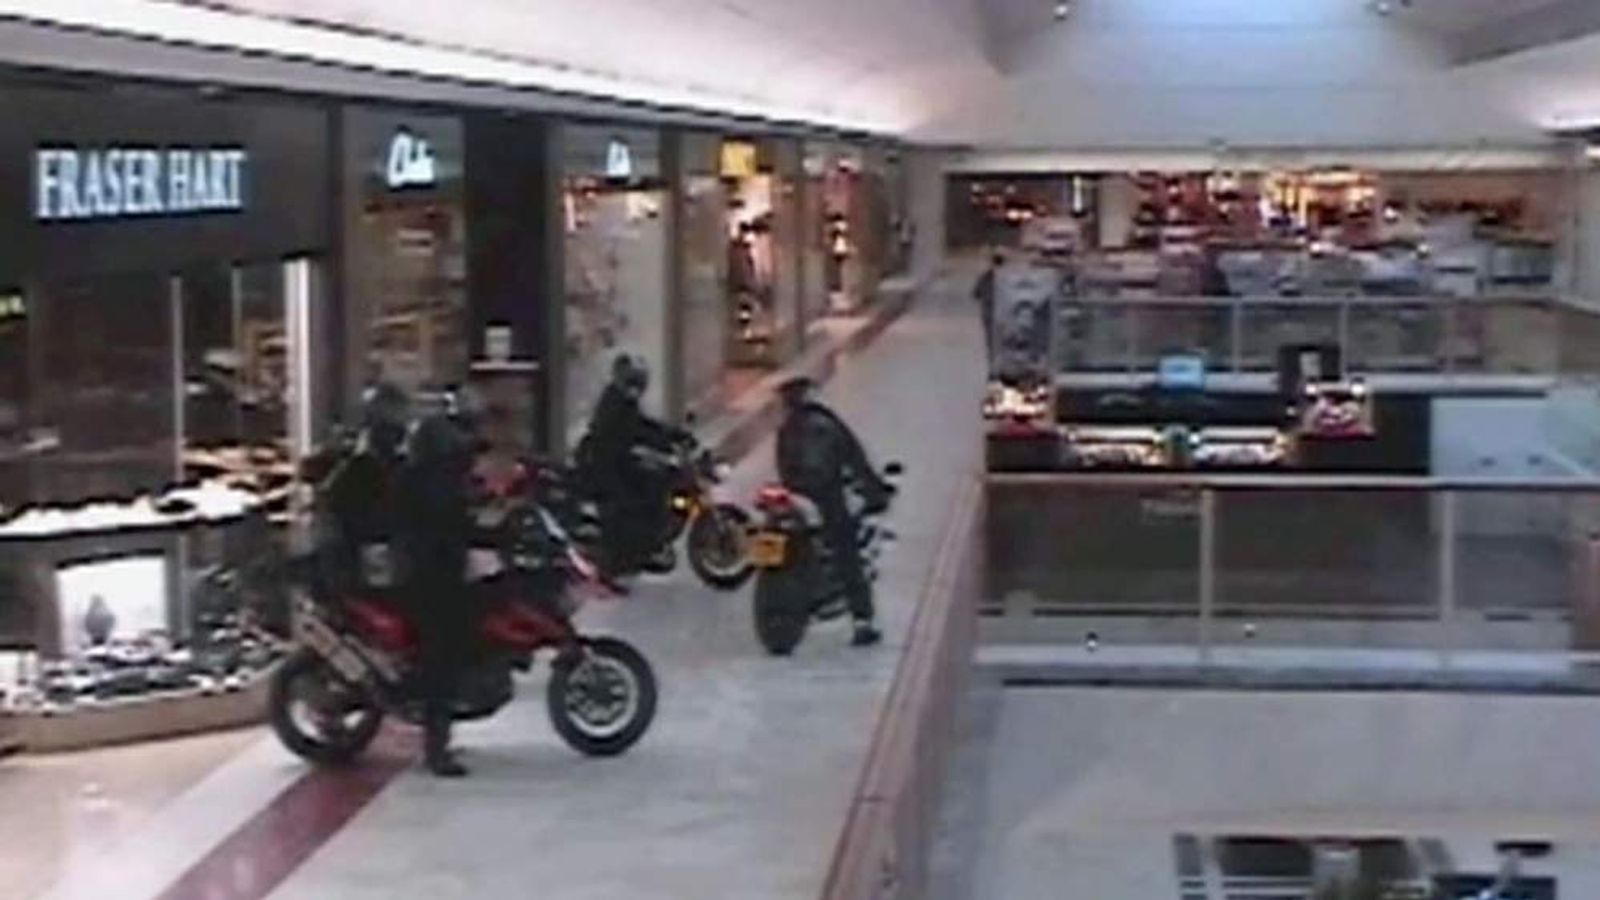 Motorbike gang in Brent Cross shopping centre robbery